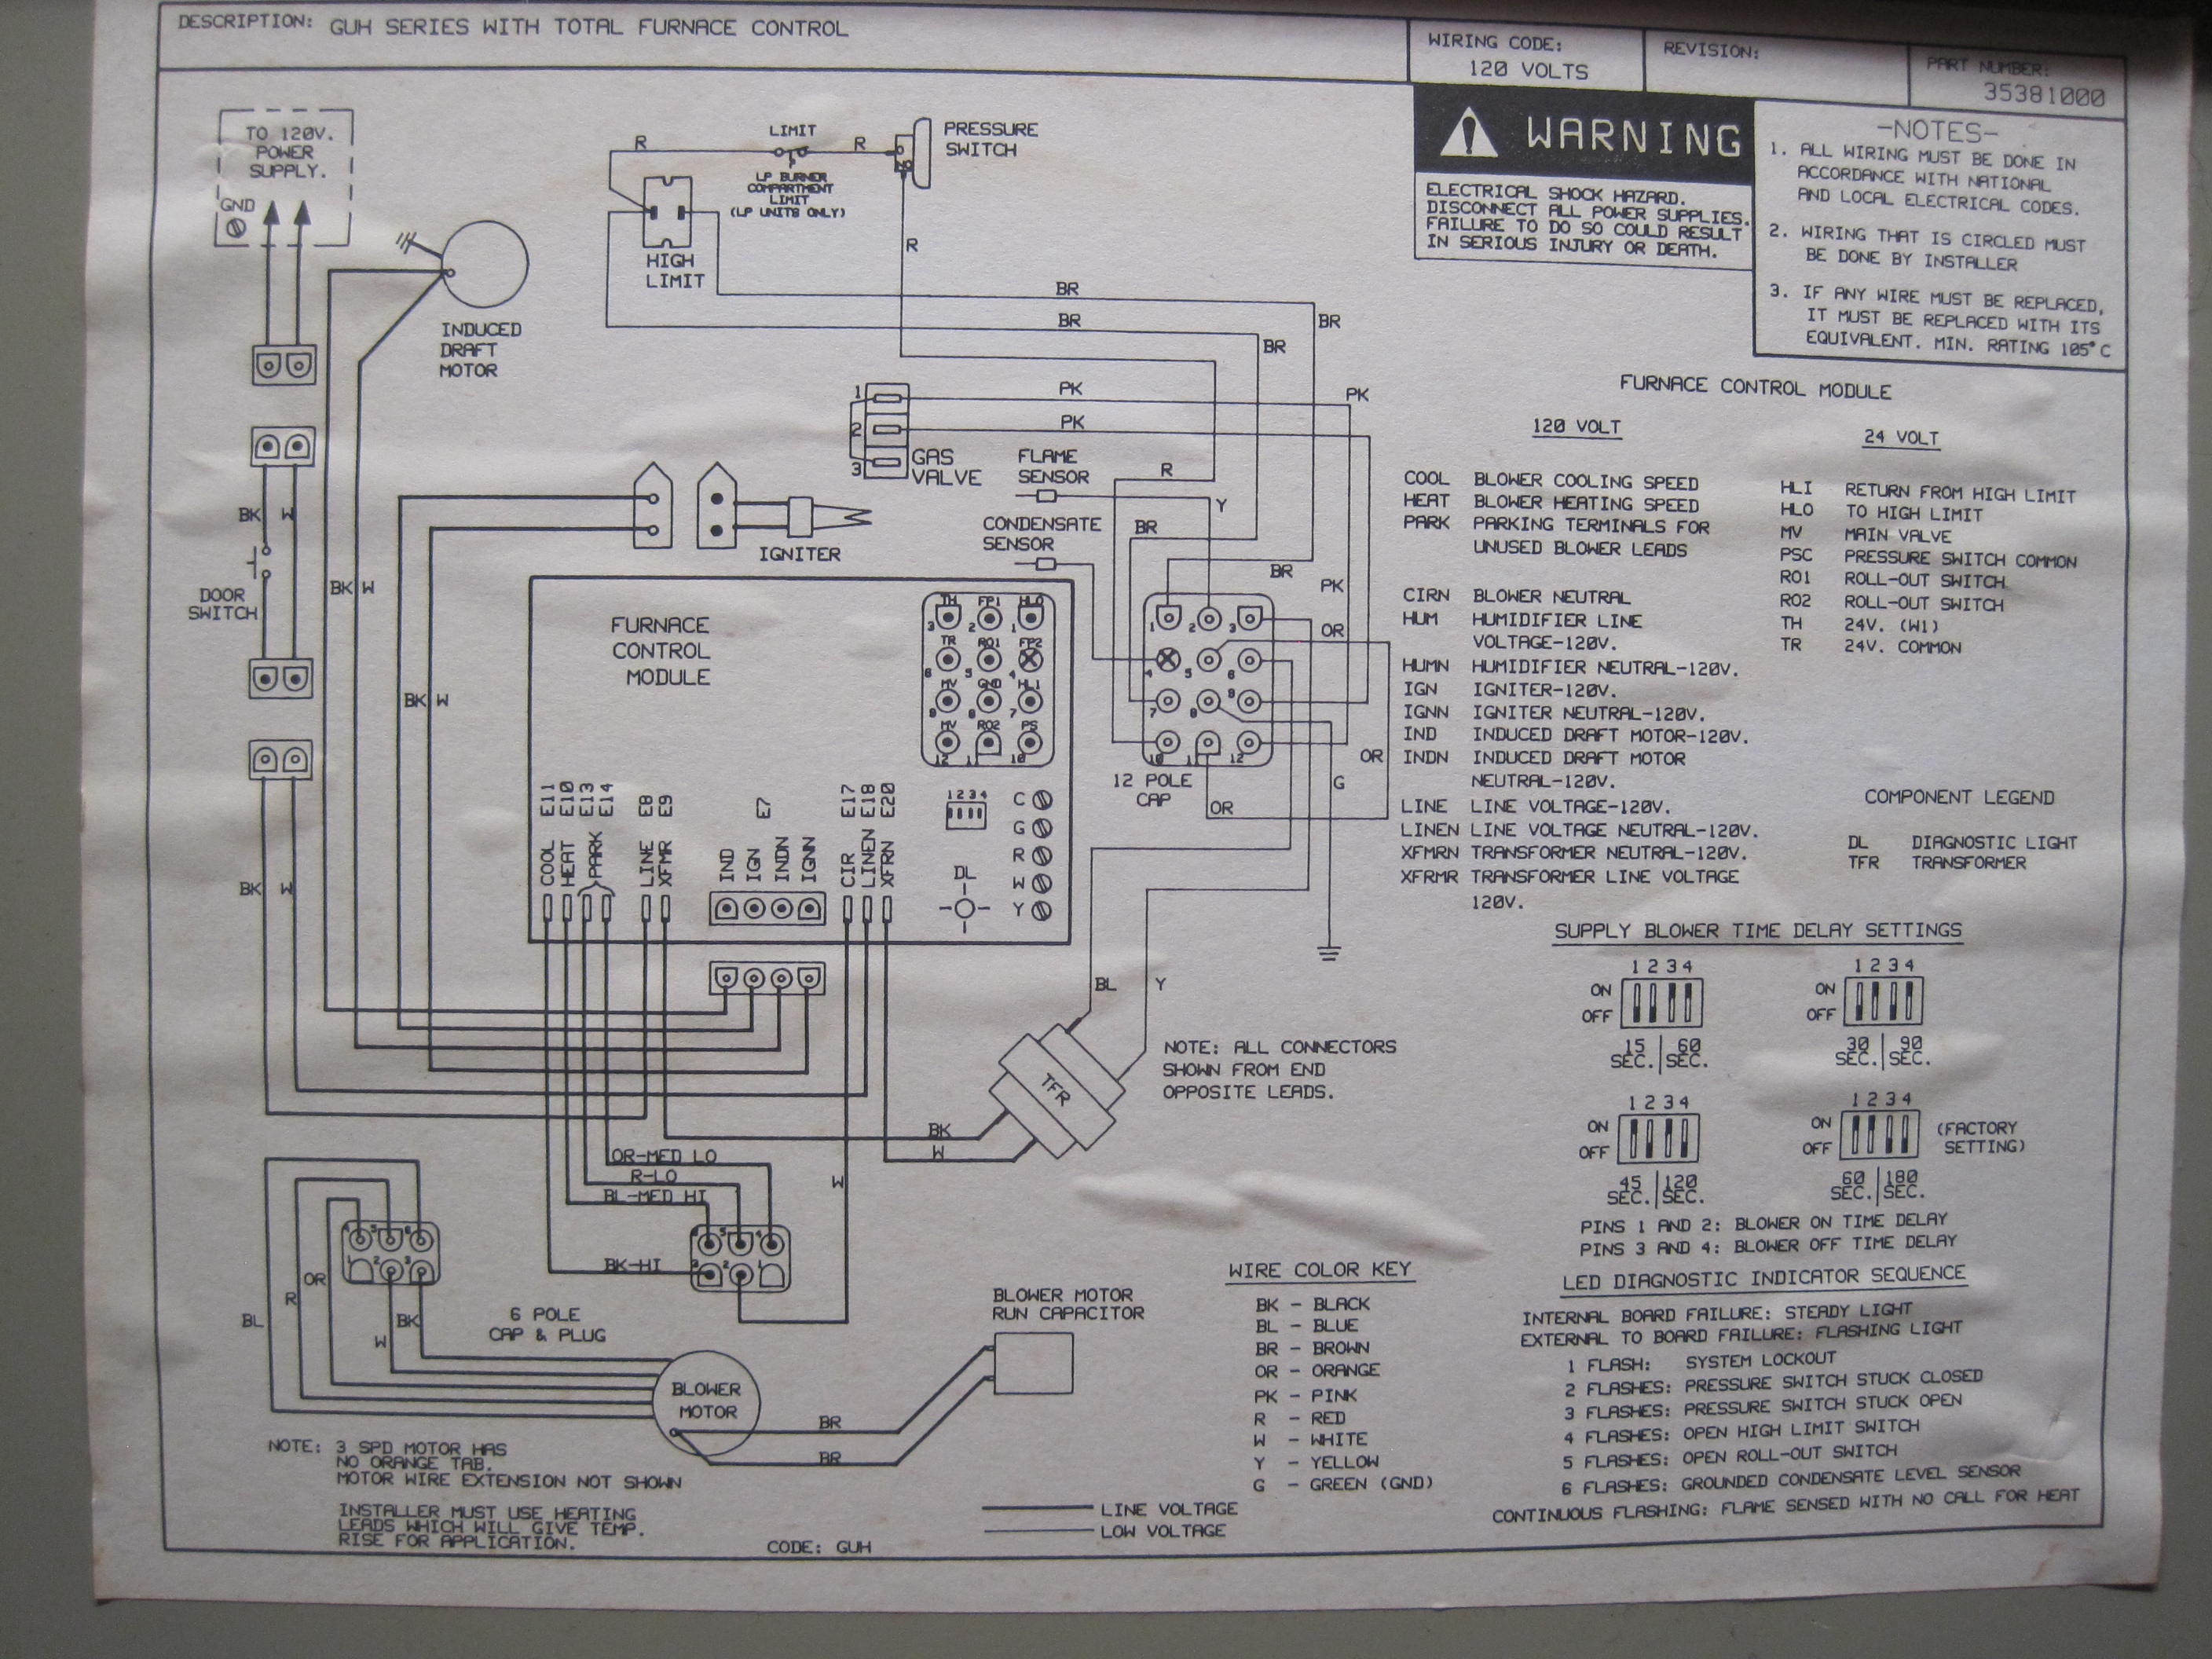 oil furnace wiring diagram older furnace residential hvac furnace wiring your furnace will not turn on. shortly before the total failure, it made an unusual and rhythmic ... #6